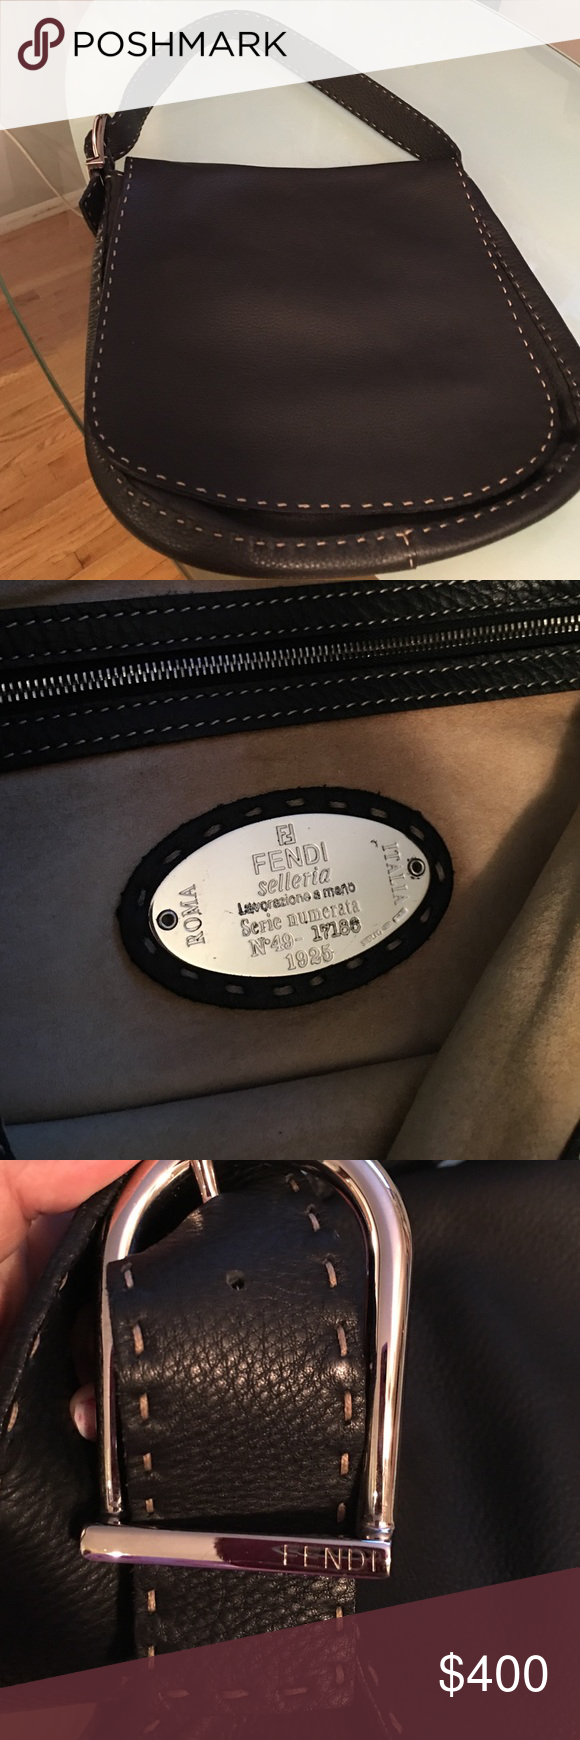 0ab4adae14 Black fendi hand bag